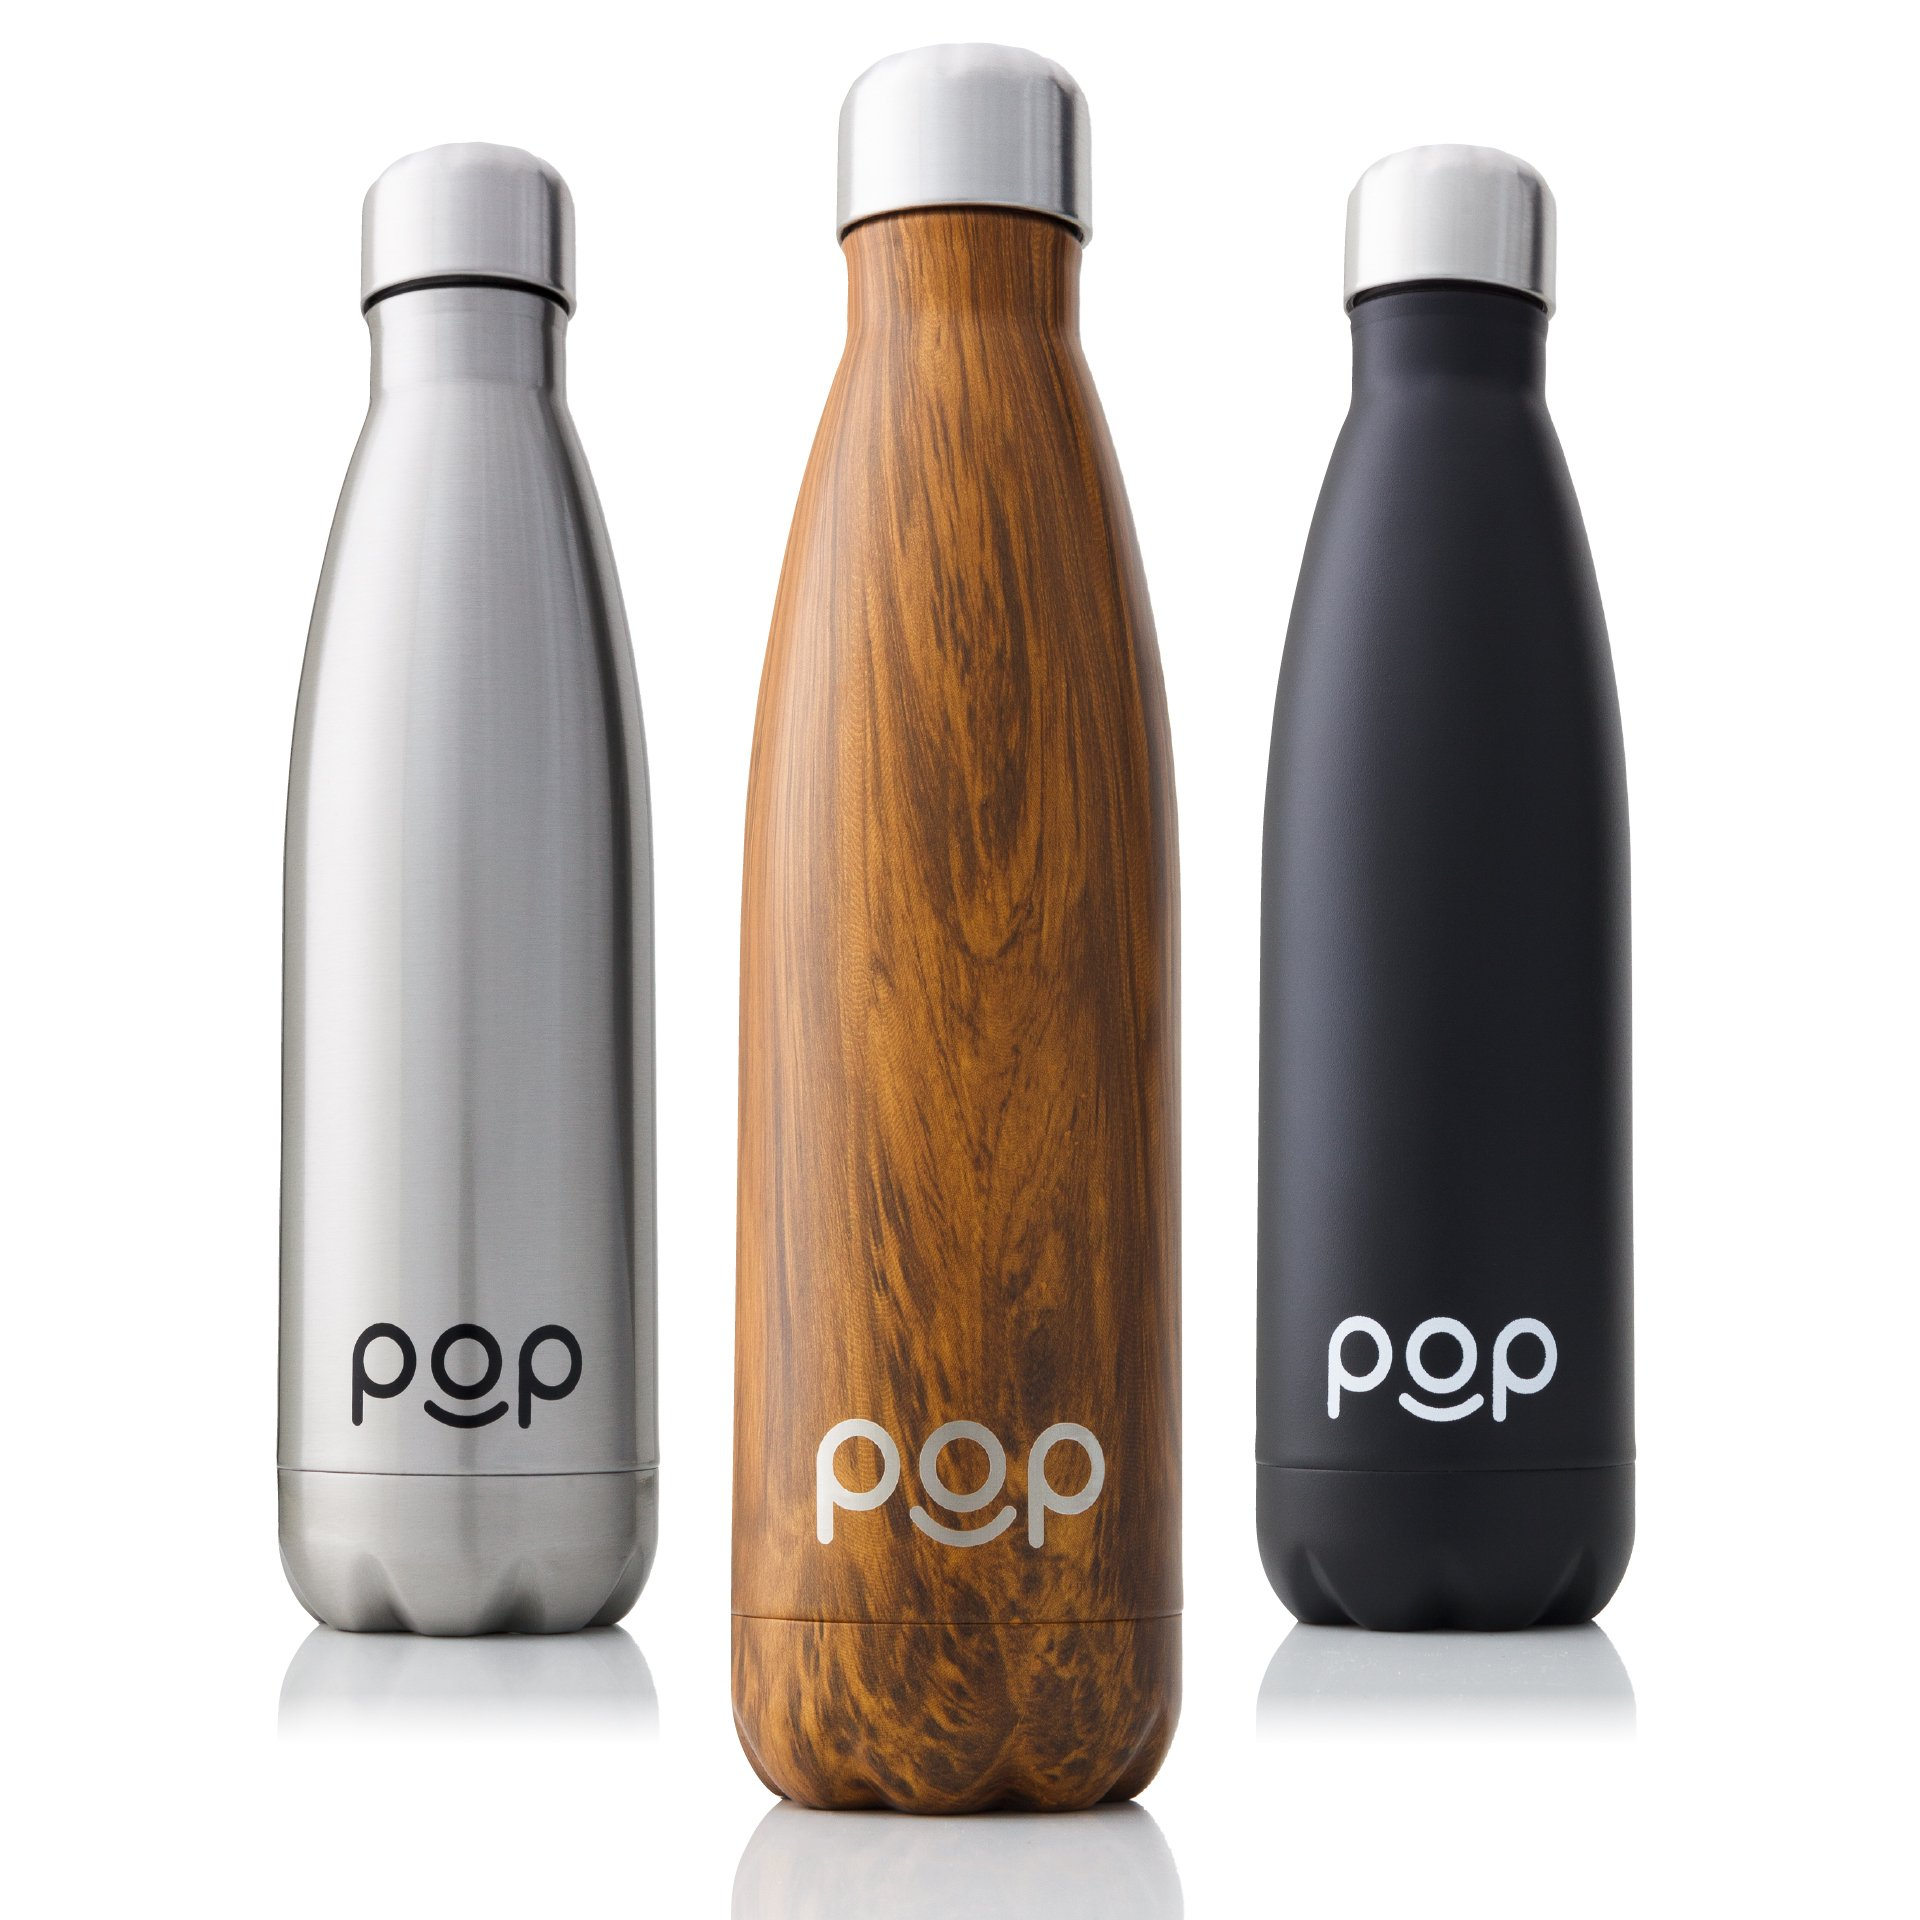 POP Stainless Steel Vacuum Insulated Water Bottle | Keeps Cold 24hrs. or Hot for 12hrs. | Sweat & Leak-Proof | Narrow Mouth & BPA Free | 17 Oz (500ml) | Zebrana